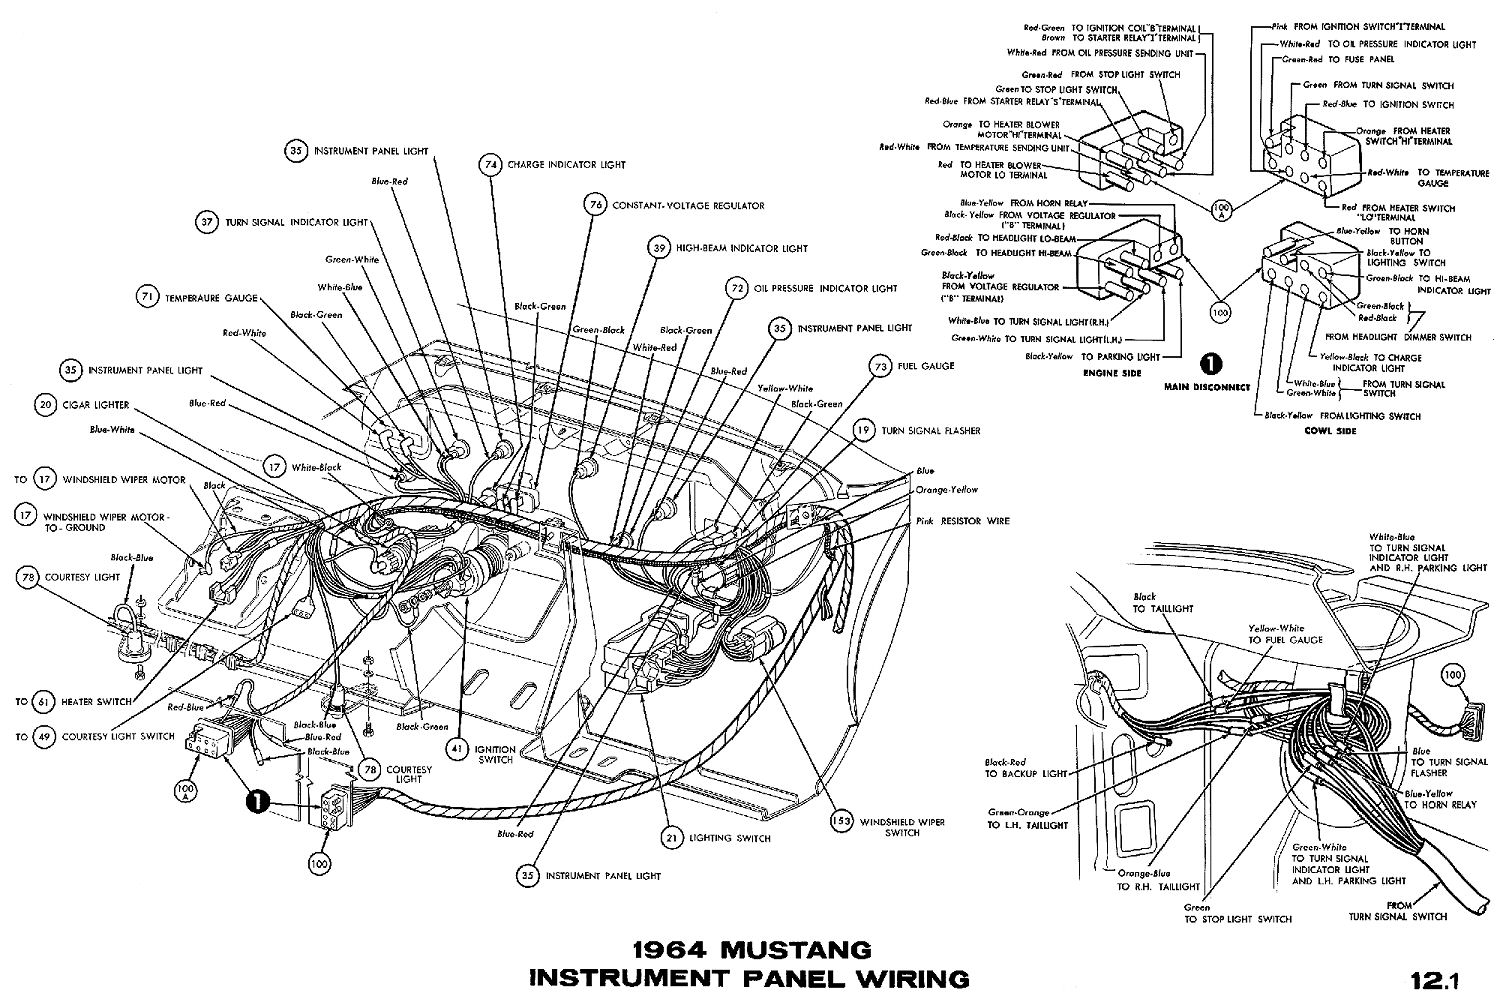 1964 Mustang Wiring Diagrams on 1967 chevelle wiper motor wiring diagram